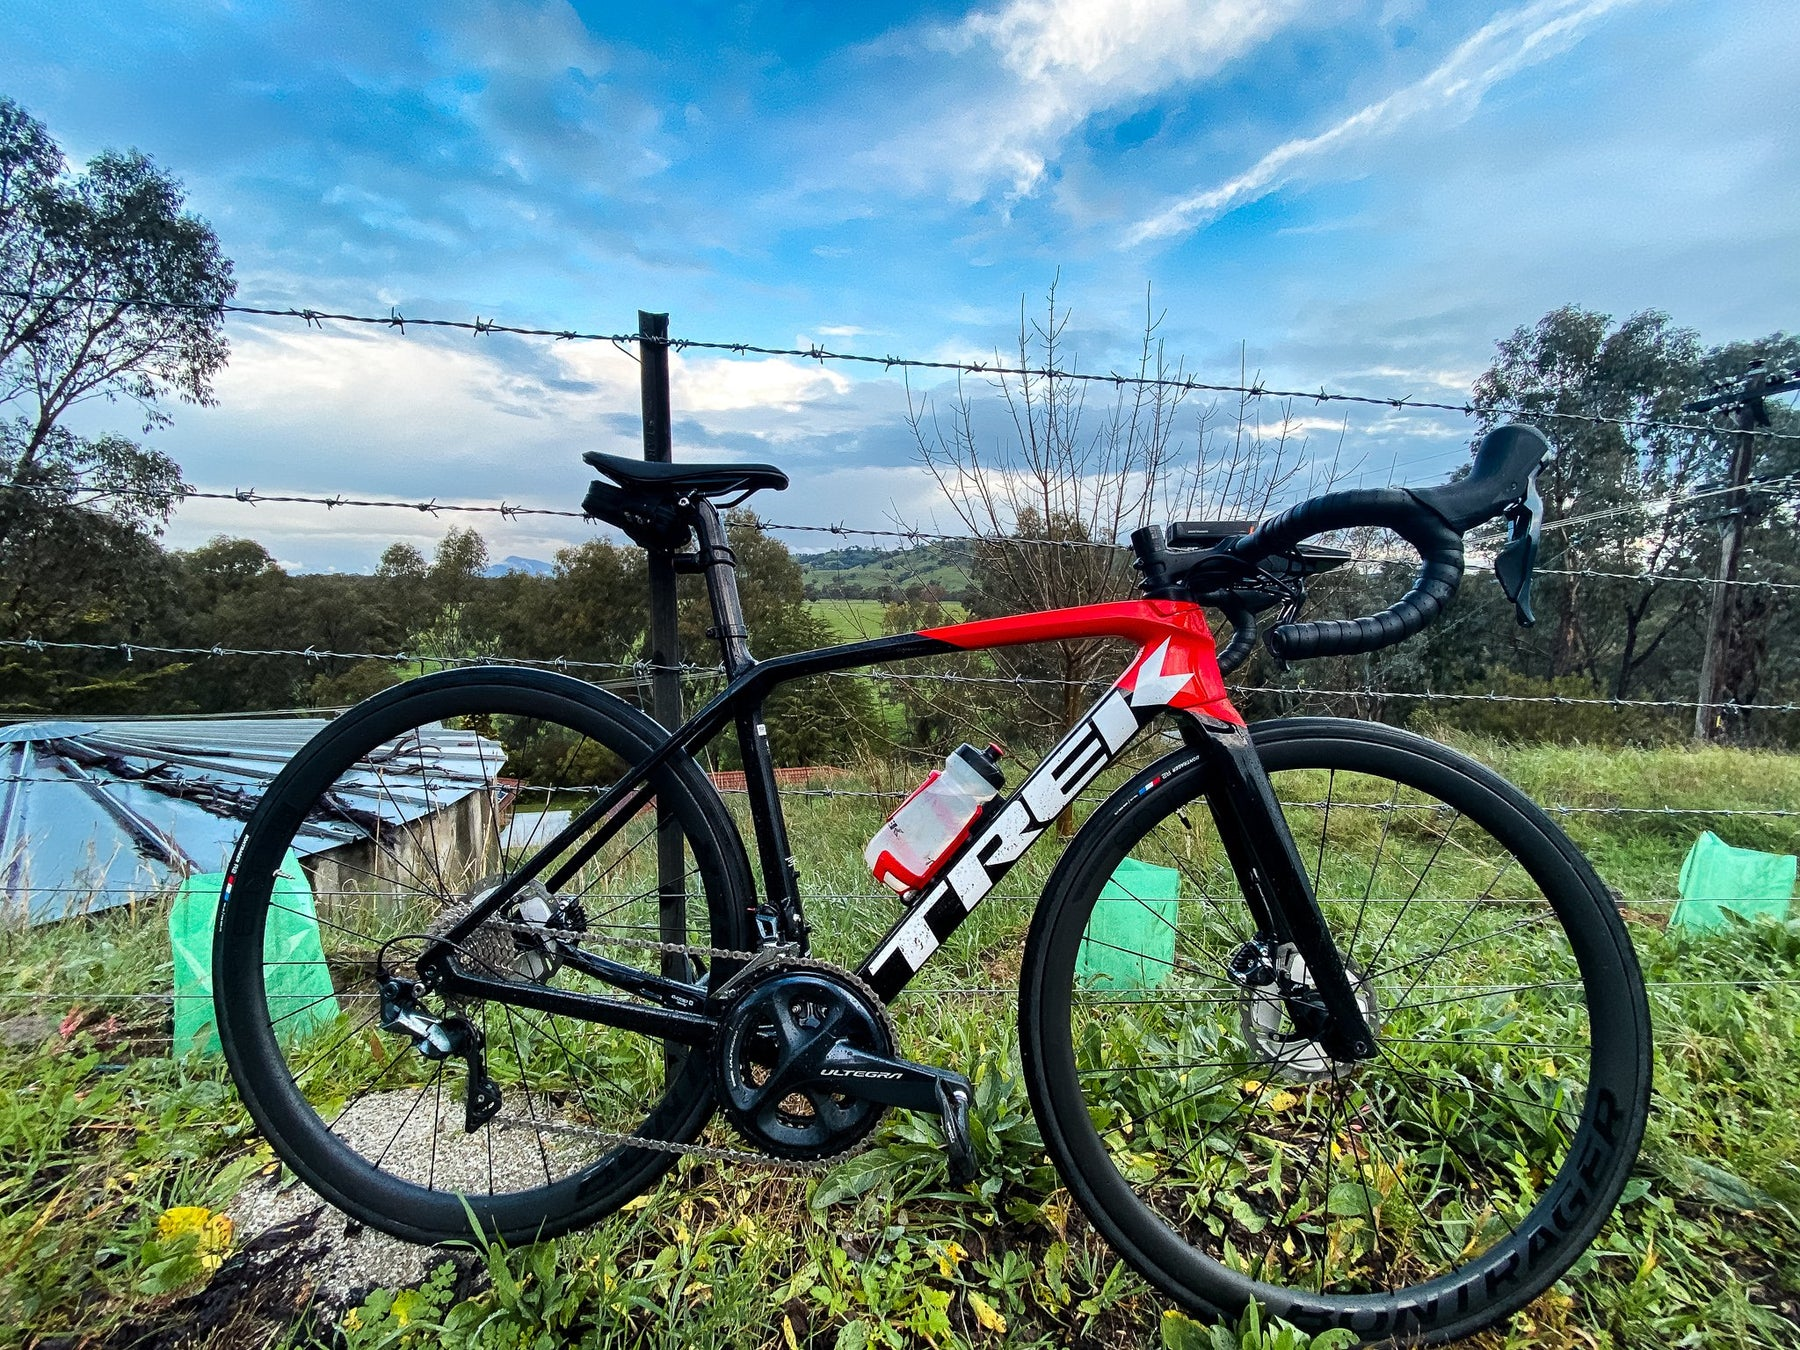 A few words on the brand new Emonda SL6 - Comet Cycles